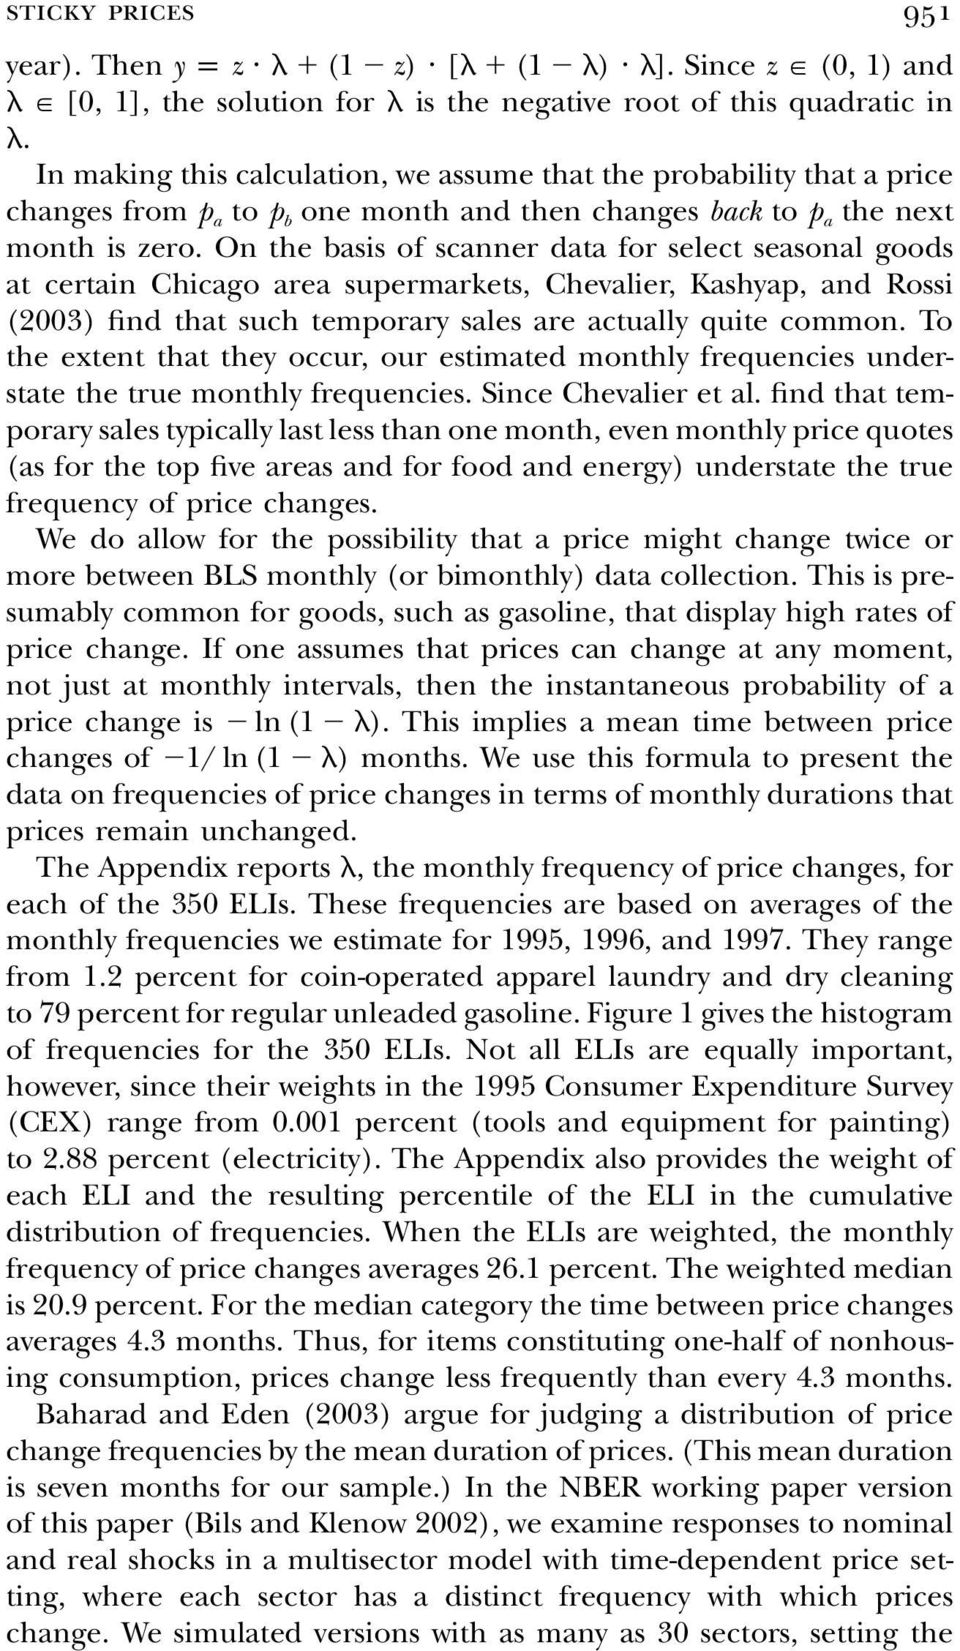 On the basis of scanner data for select seasonal goods at certain Chicago area supermarkets, Chevalier, Kashyap, and Rossi (2003) find that such temporary sales are actually quite common.